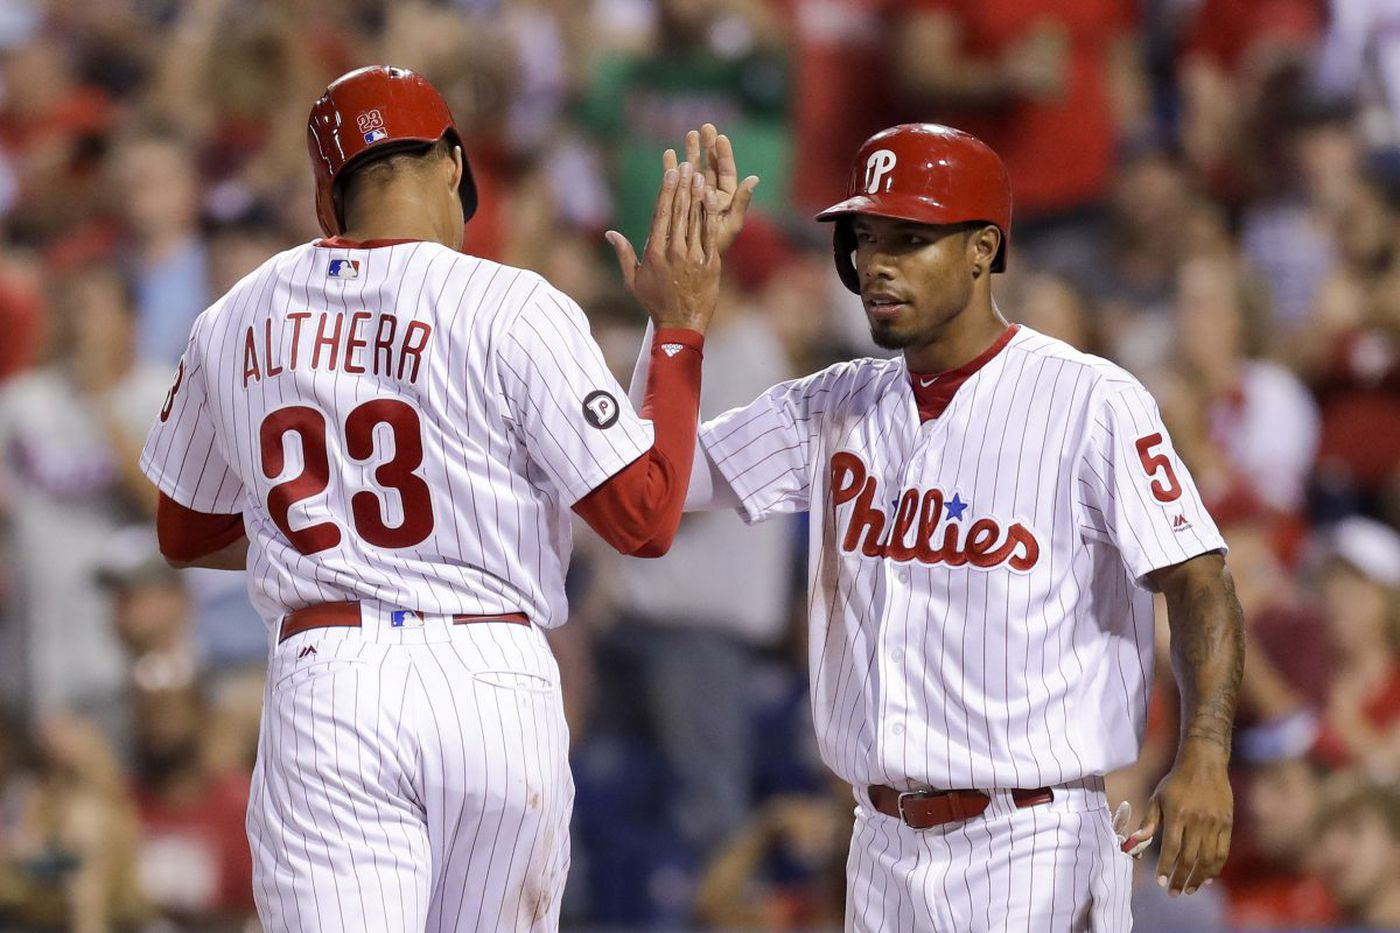 Phillies spring training: Nick Williams, Aaron Altherr ready for outfield shuffle